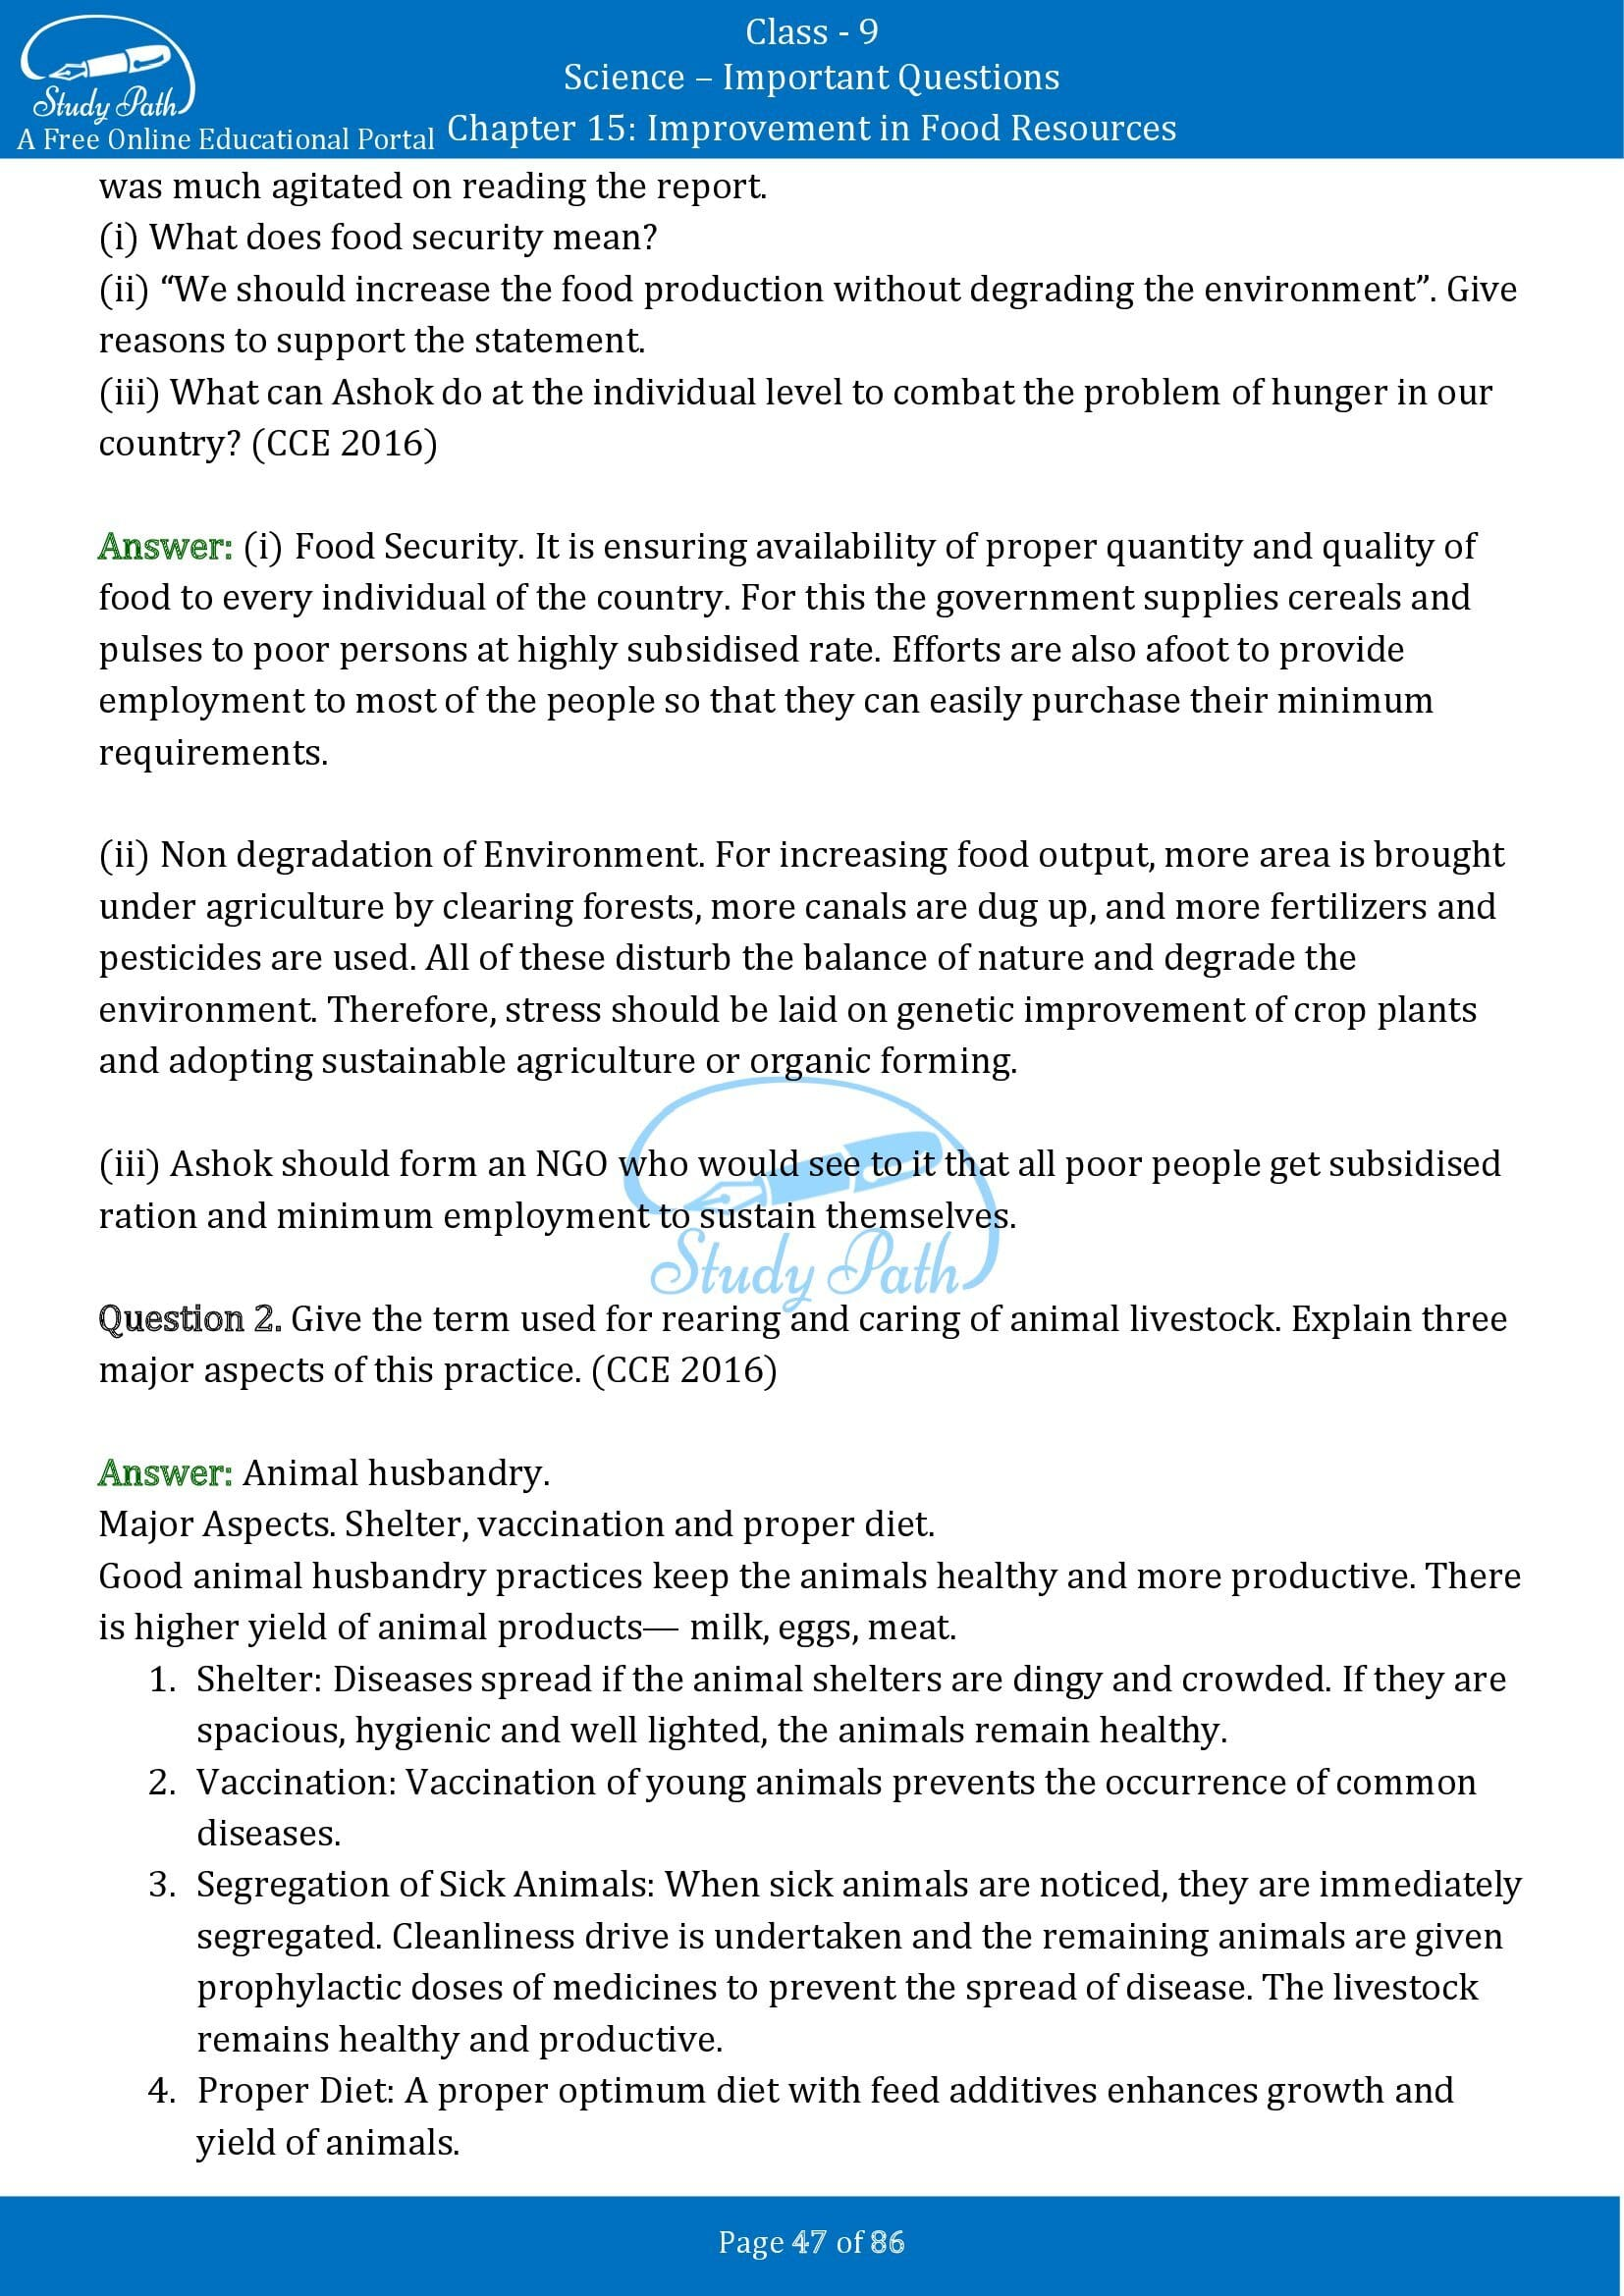 Important Questions for Class 9 Science Chapter 15 Improvement in Food Resources 00047